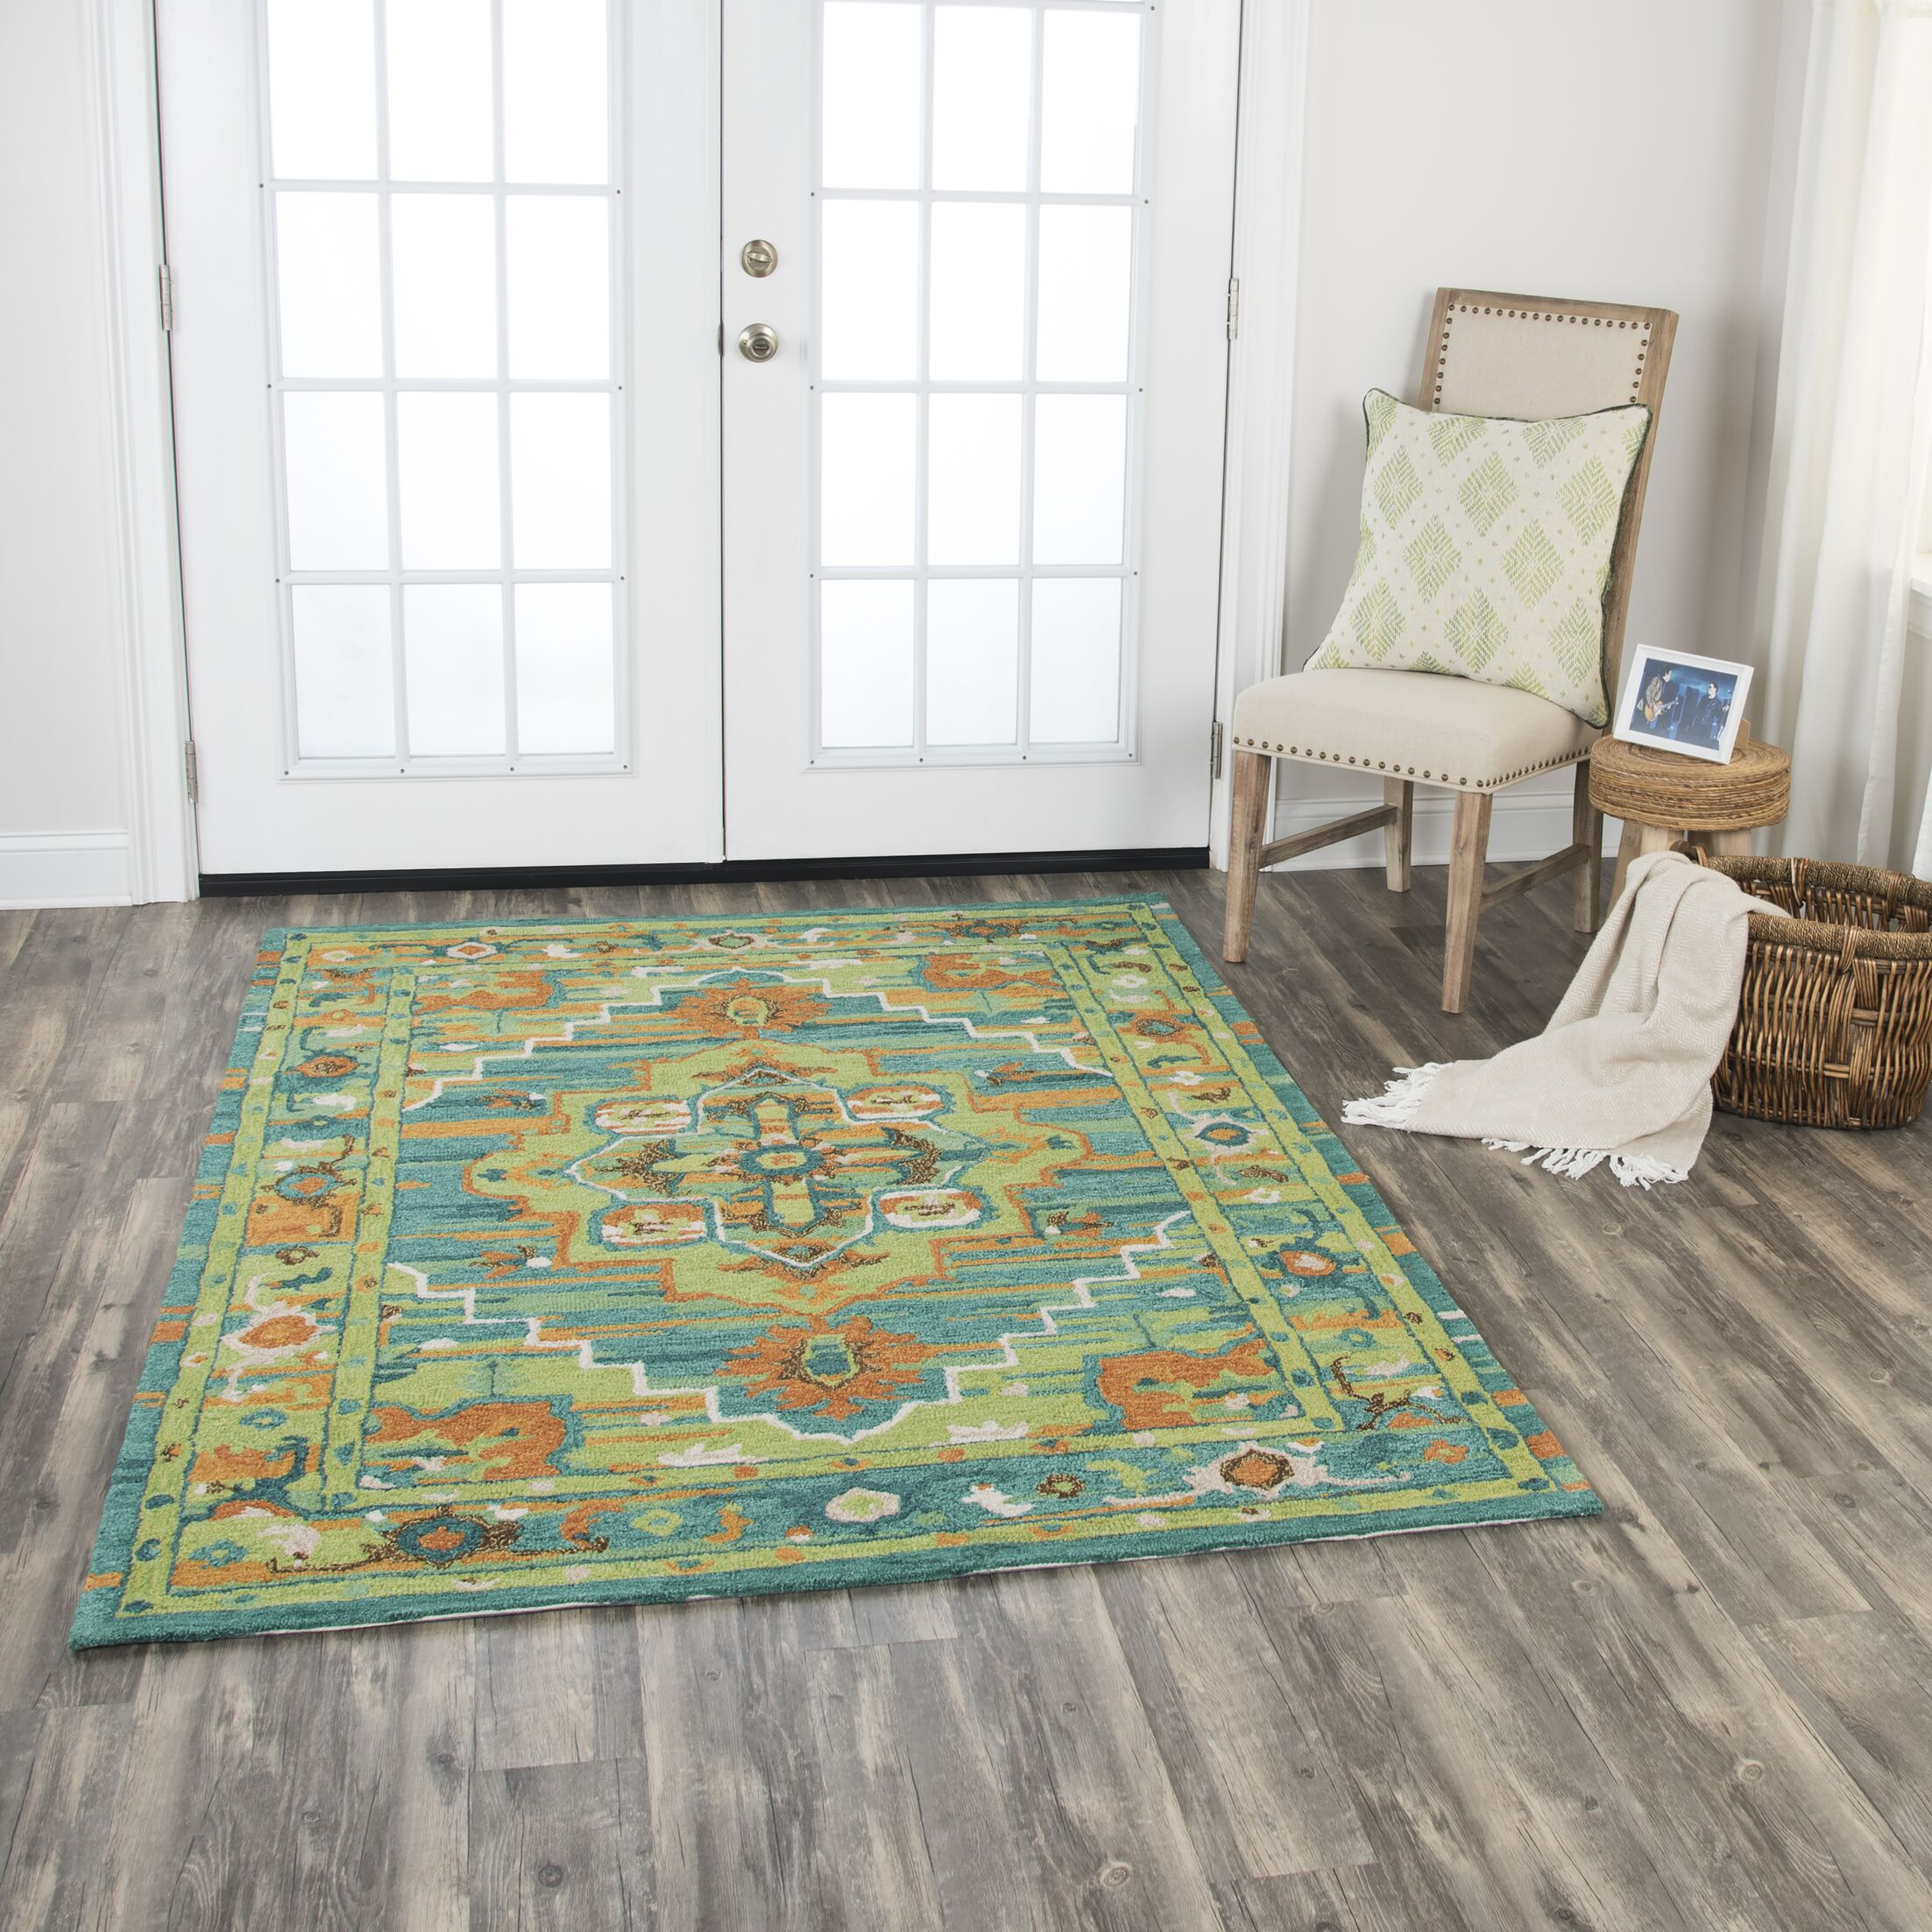 Roreti Hand-Tufted Wool Green Area Rug Rug Size: 7' x 10'